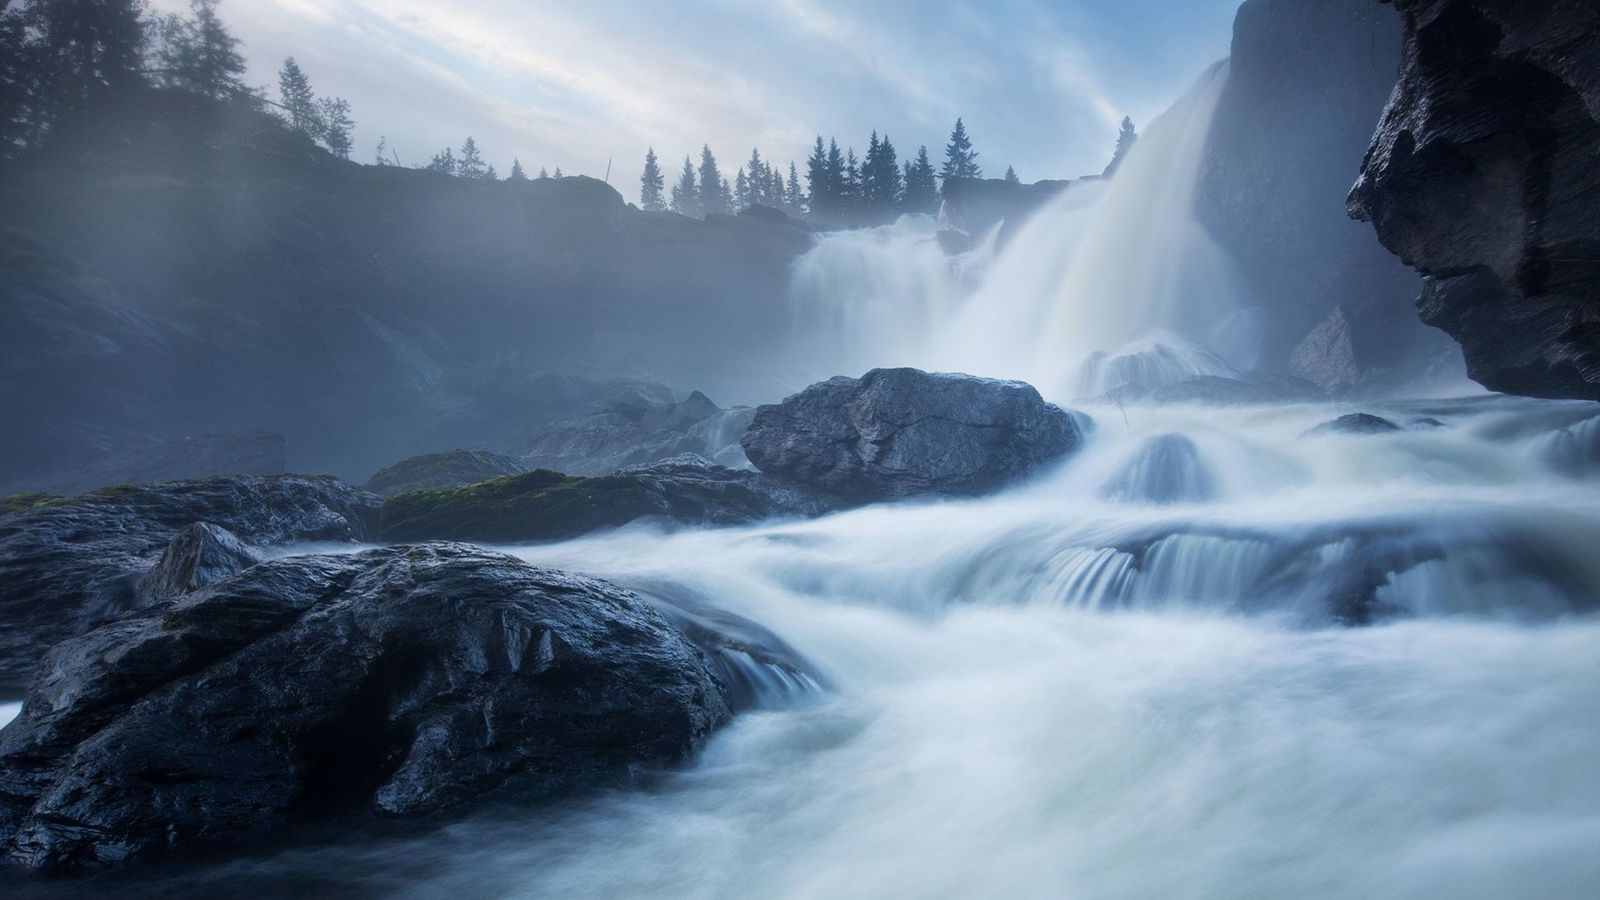 Nearly 200 feet wide, this popular waterfall is one of Sweden's largest.